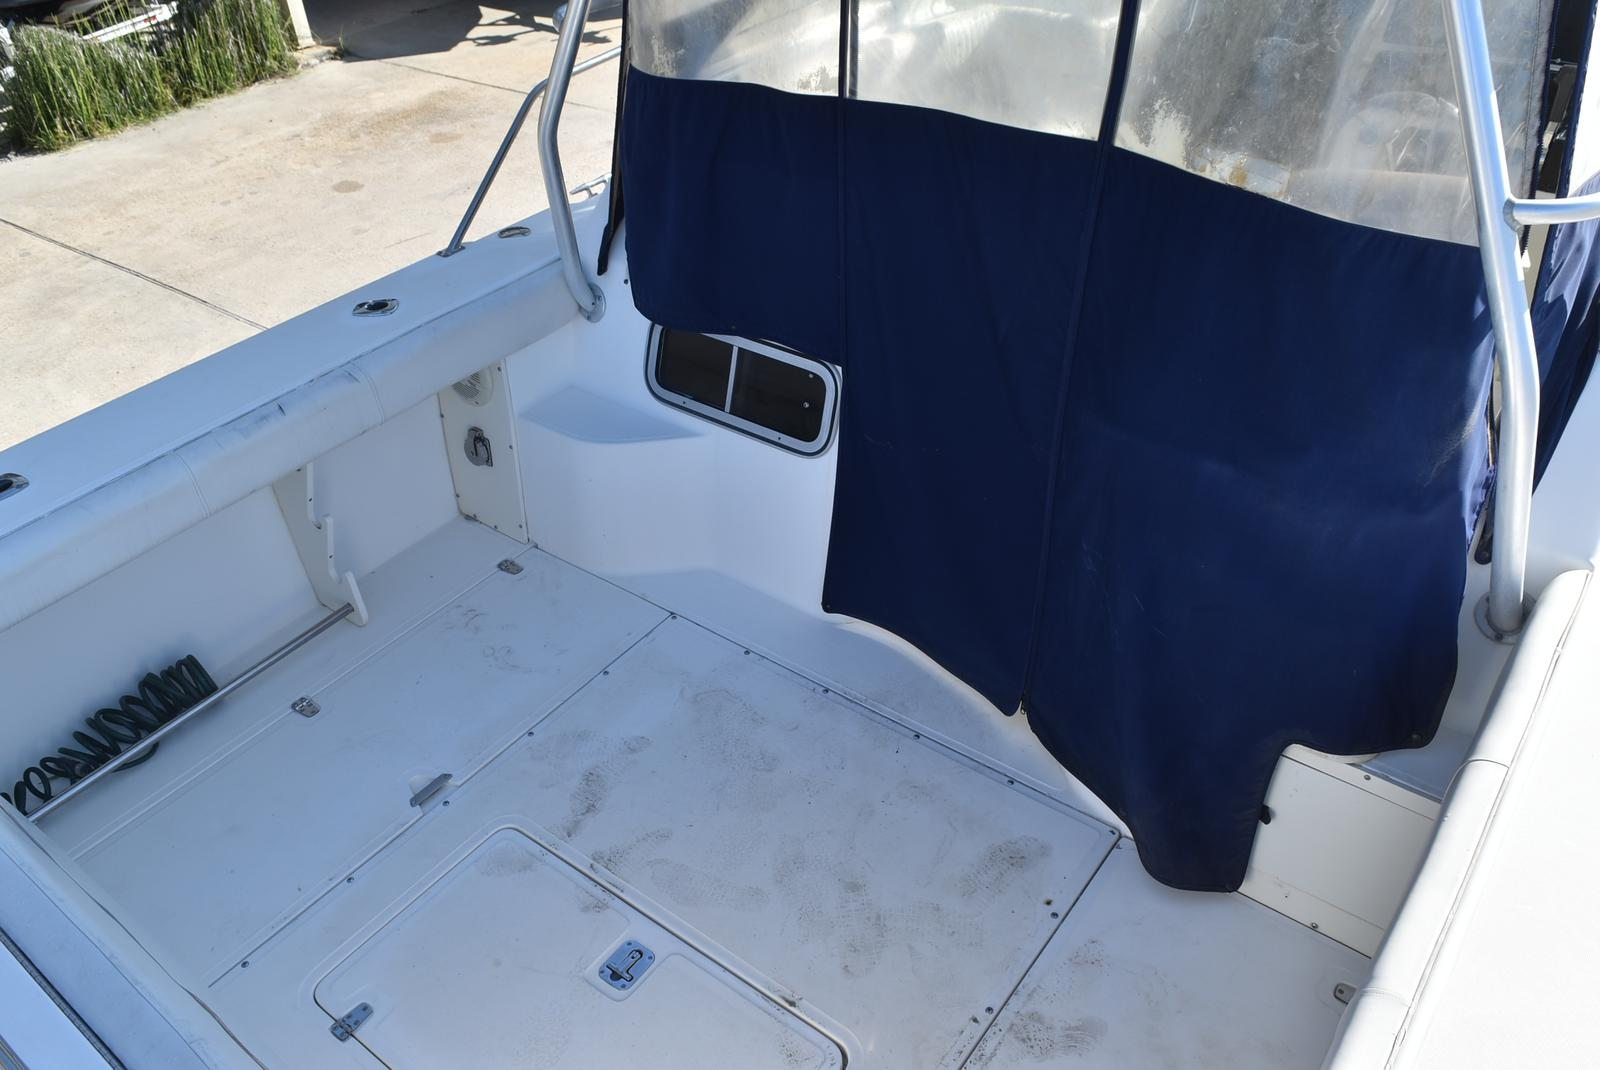 1999 Boston Whaler boat for sale, model of the boat is 285 Conquest & Image # 8 of 50